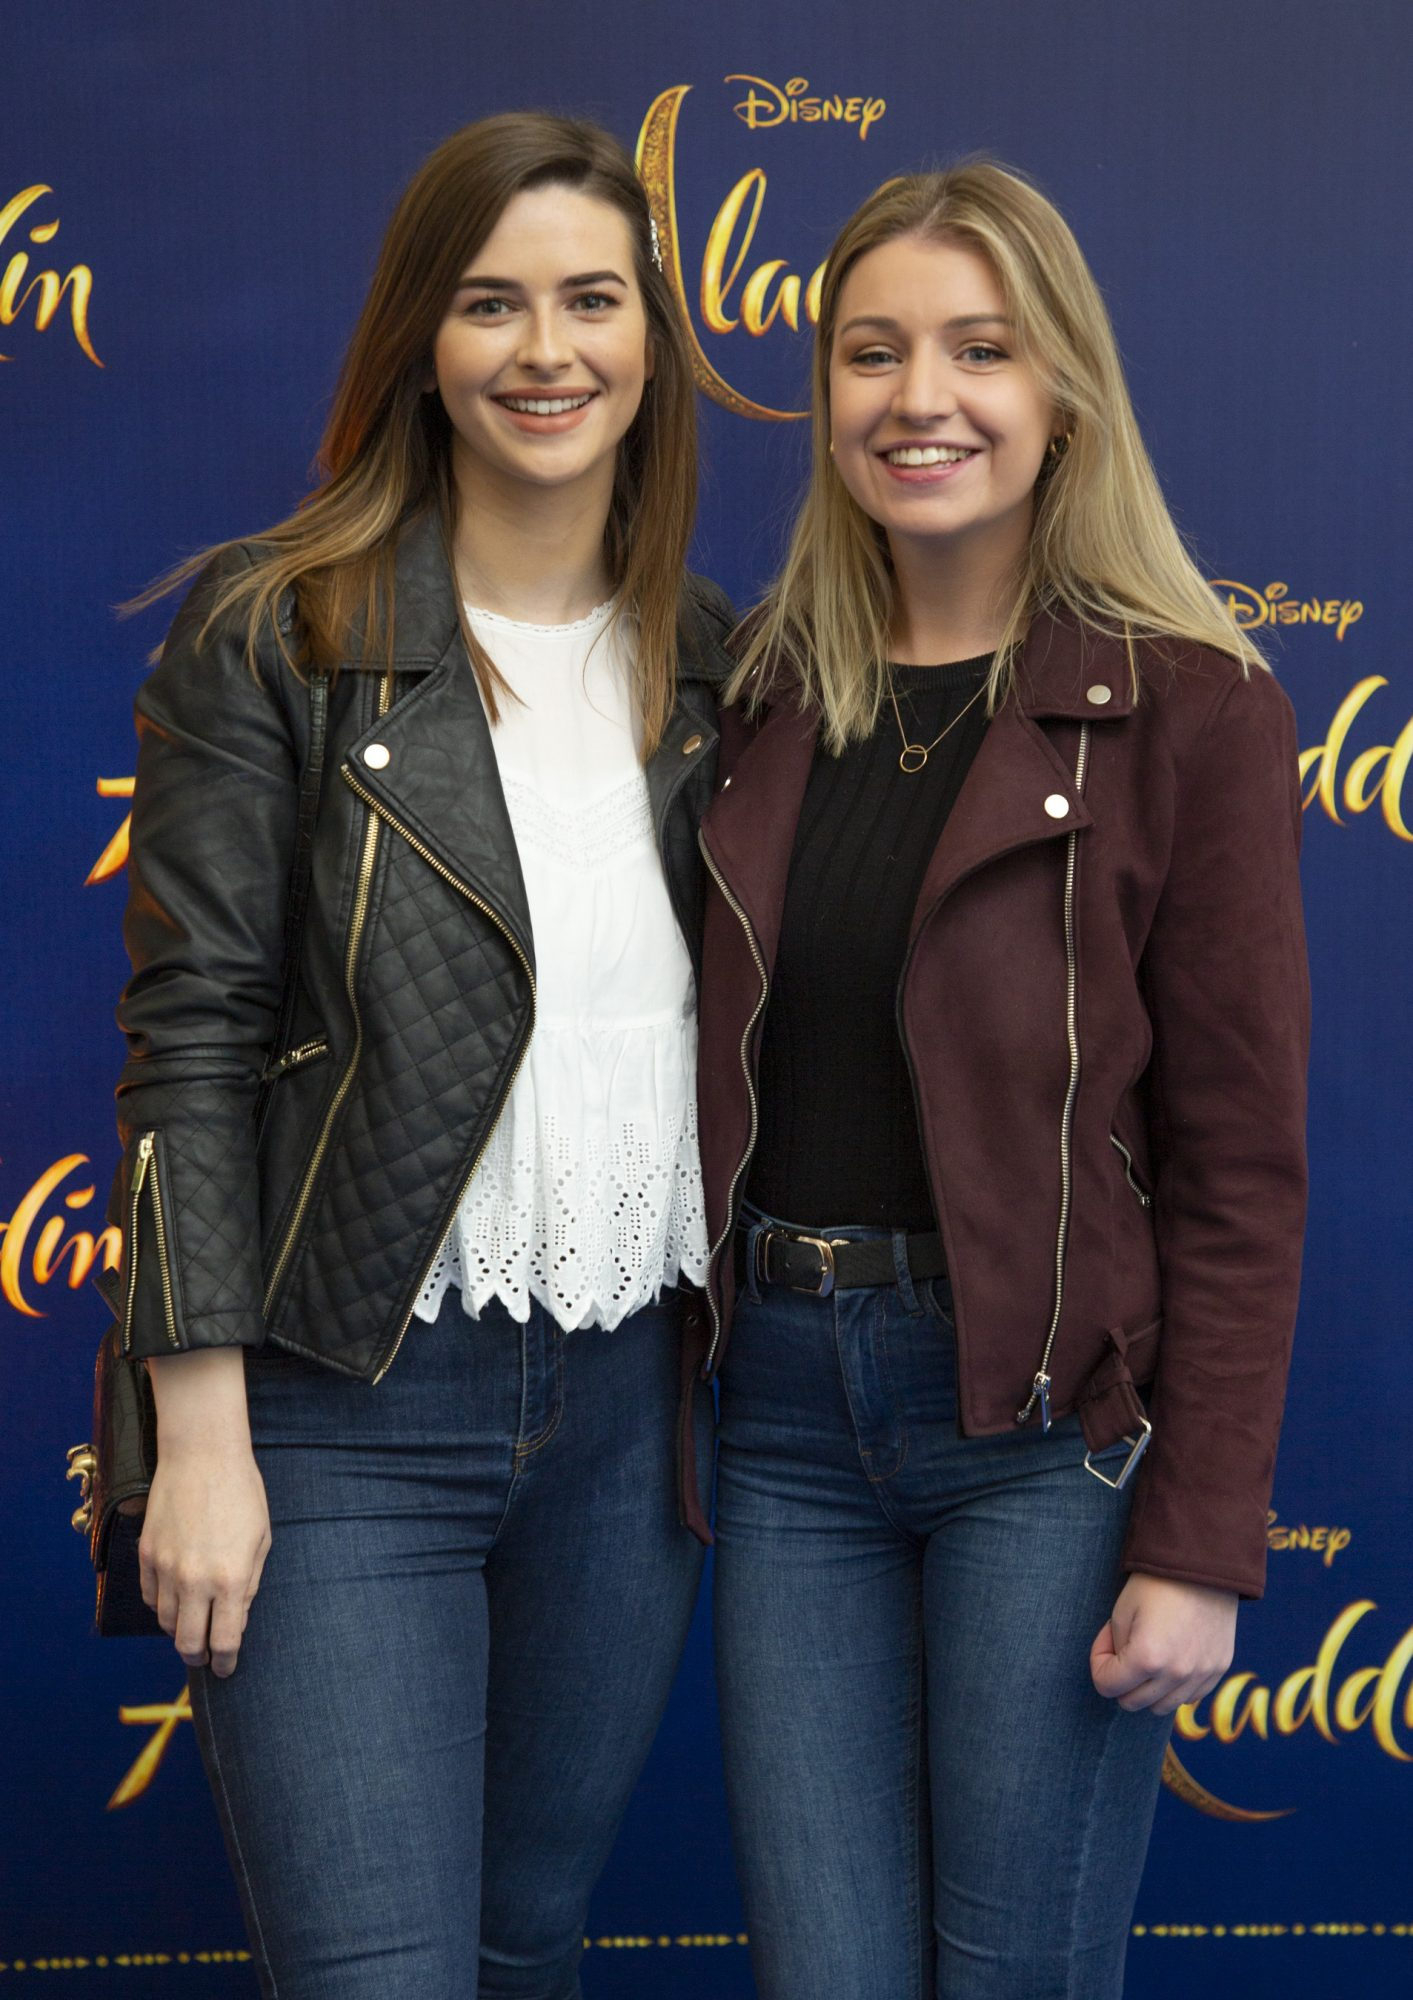 Lauren Dardis & Julie McCall pictured at the special preview screening of Disney's 'Aladdin' at the Odeon Point Village. Photo: Anthony Woods